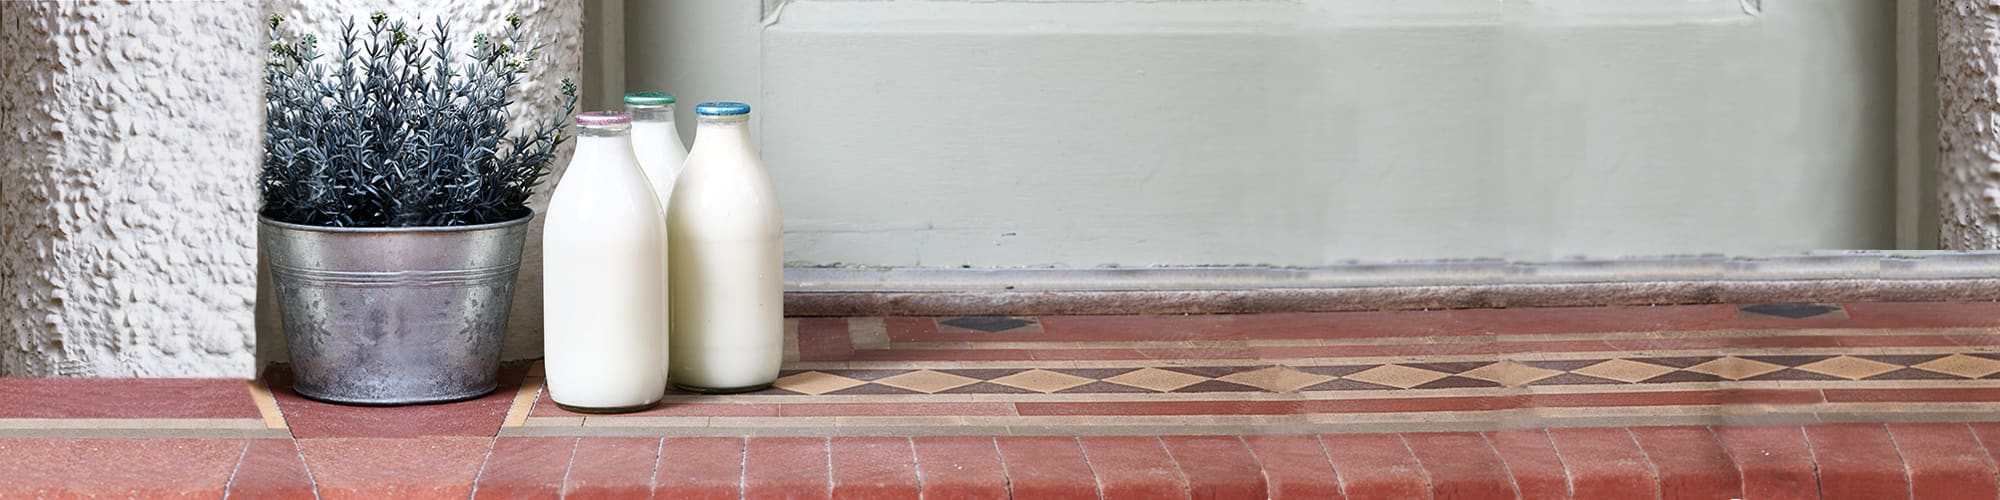 Hassle free deliveries to your door with Milk & More